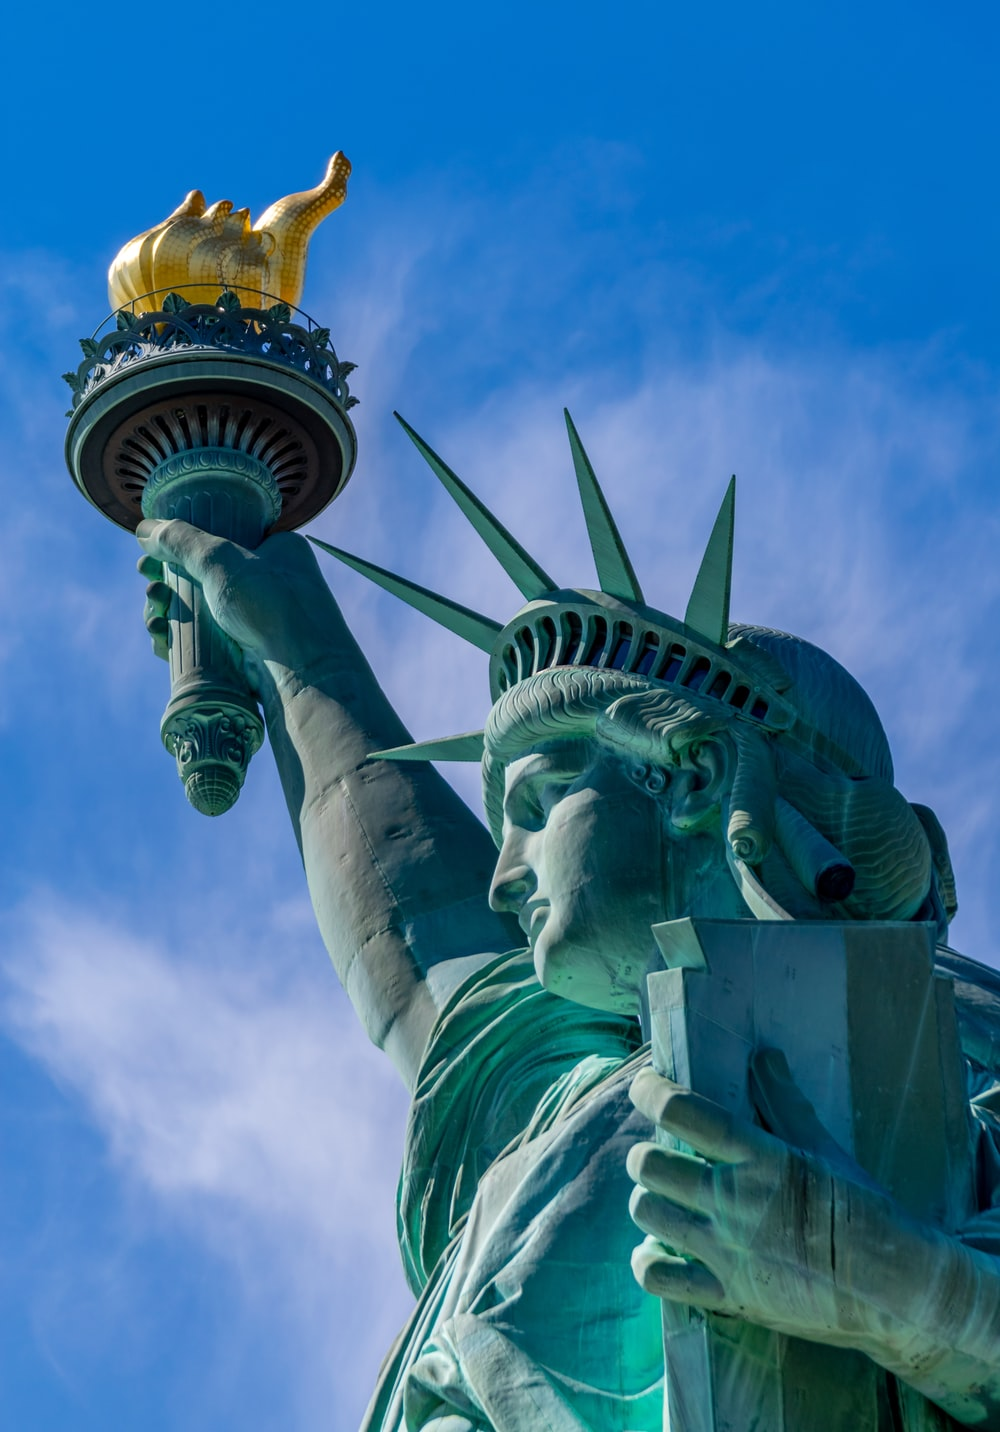 Statue of Liberty during daytime close-up photography